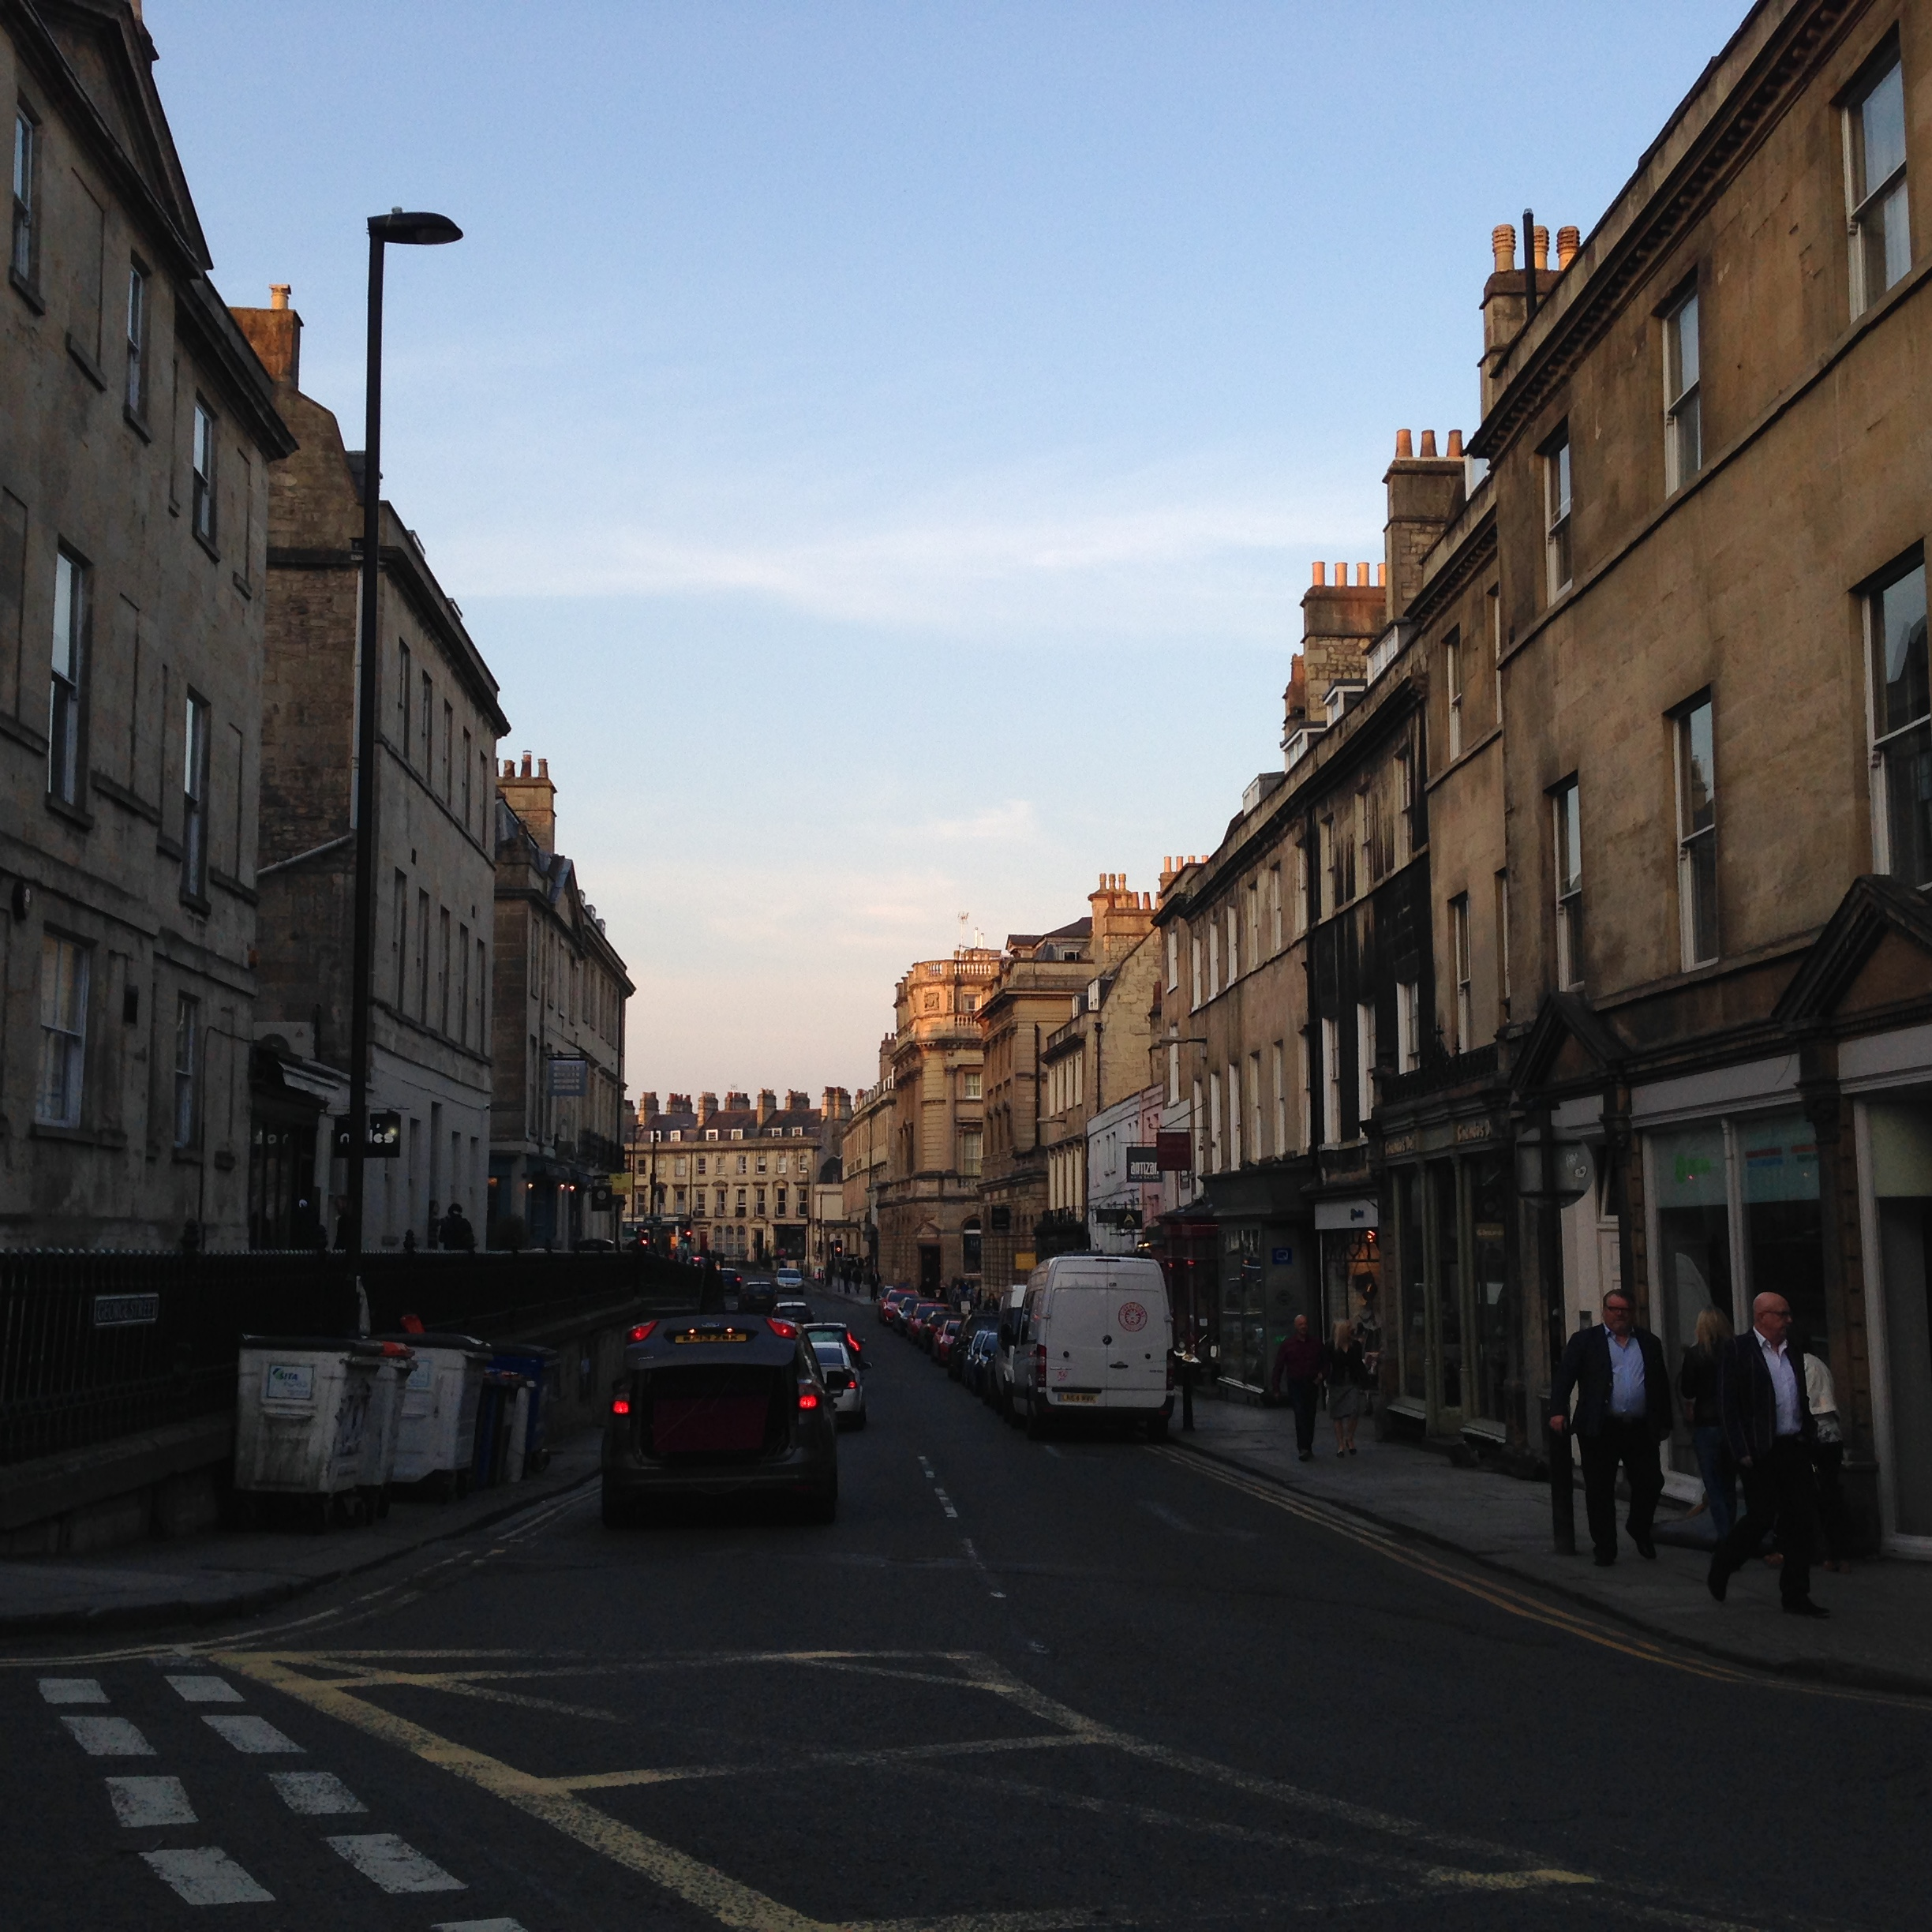 Another street in Bath.